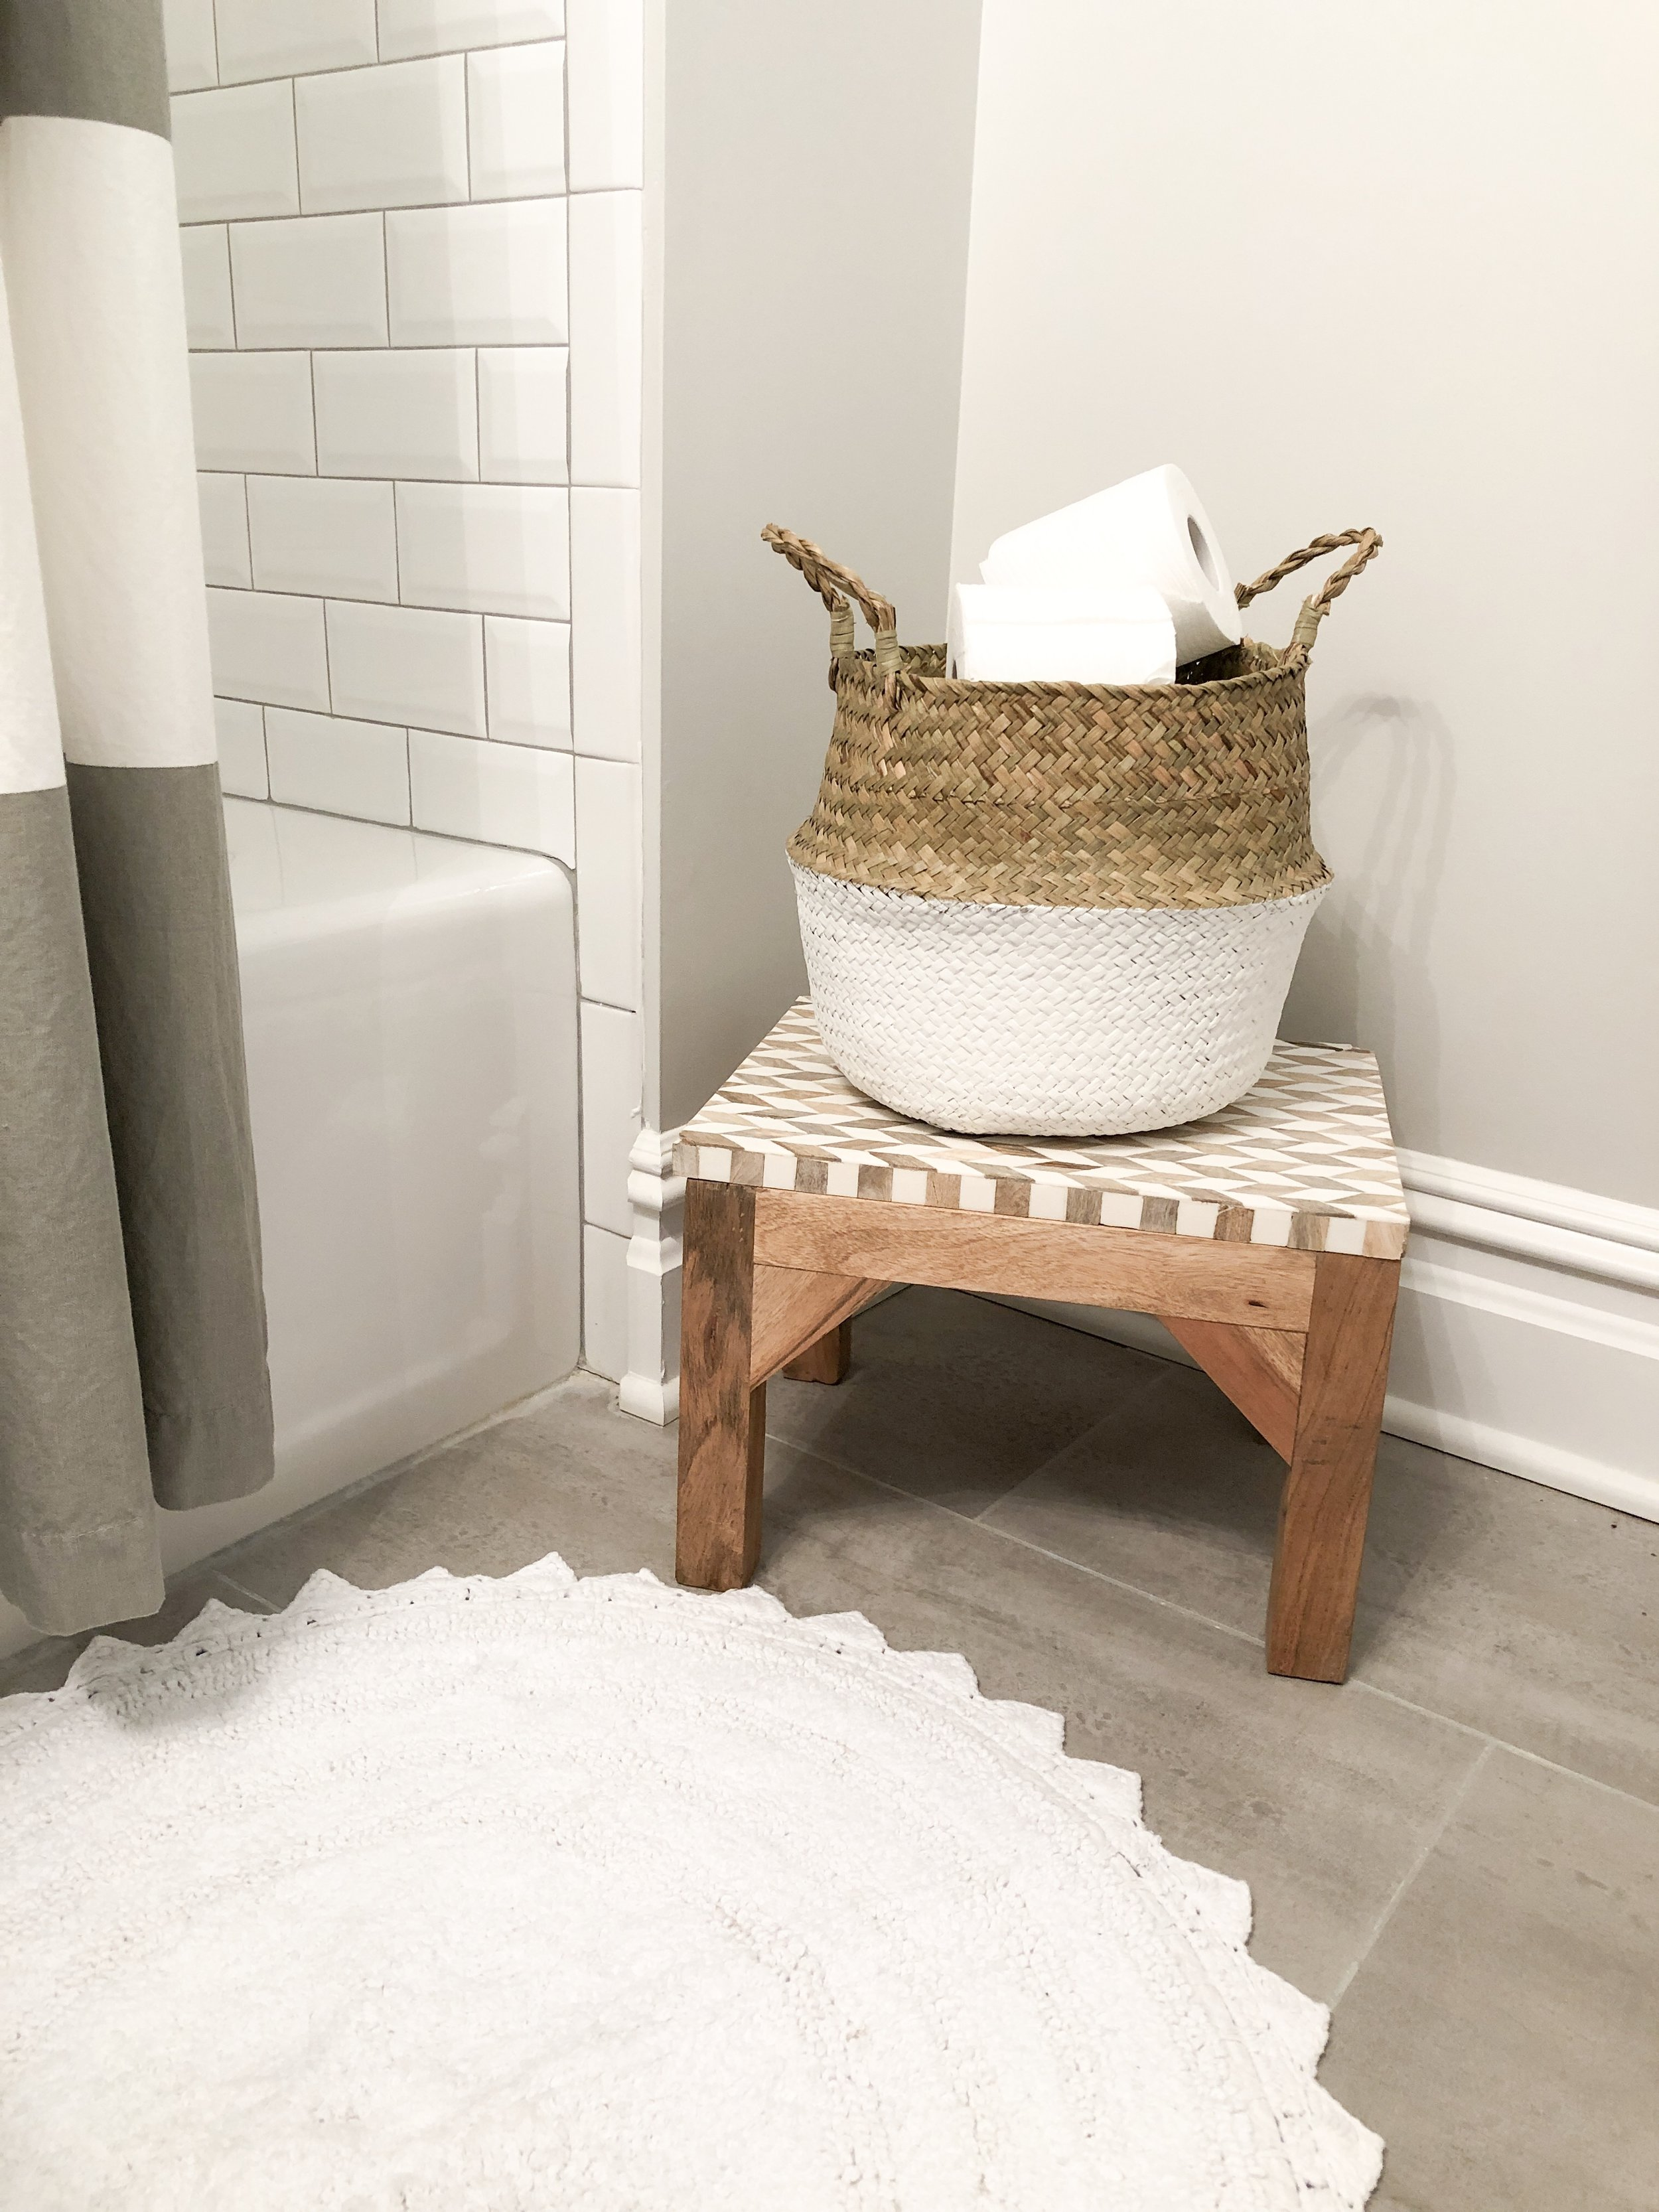 Belly basket make for attractive storage for toilet paper.